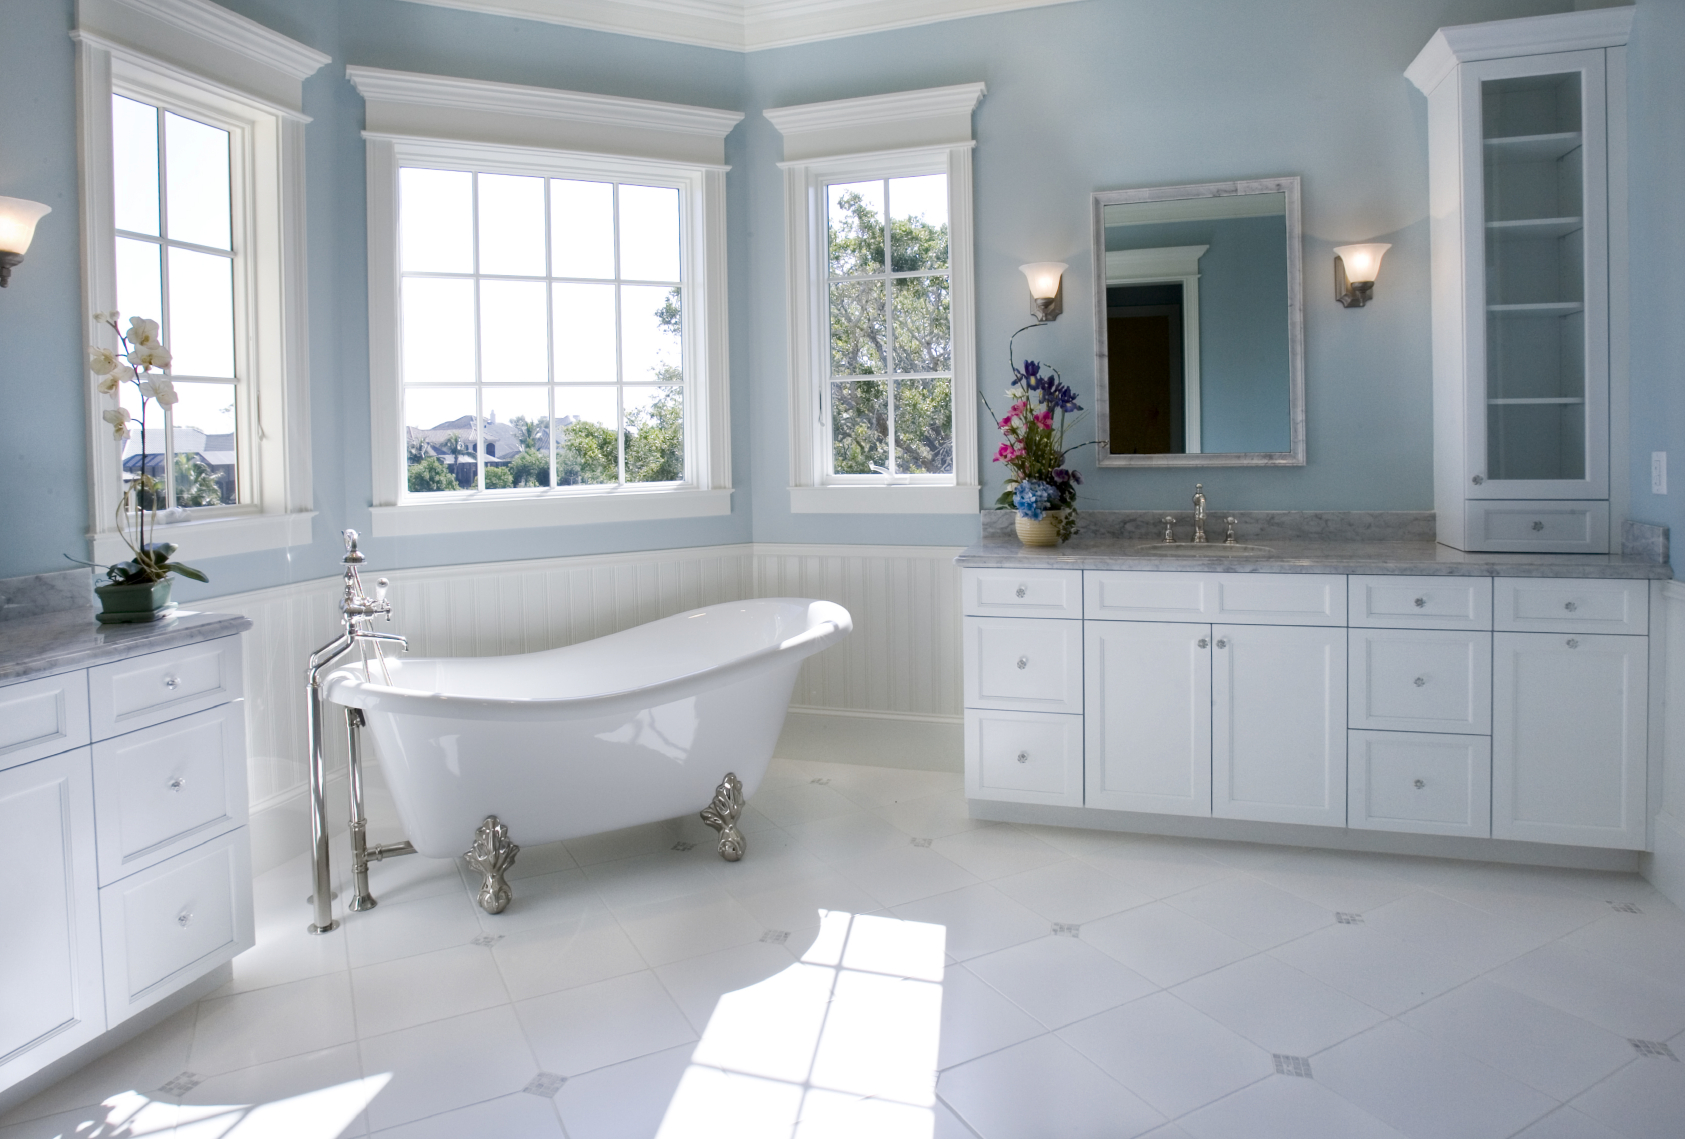 34 luxury white master bathroom ideas pictures for New bathtub ideas